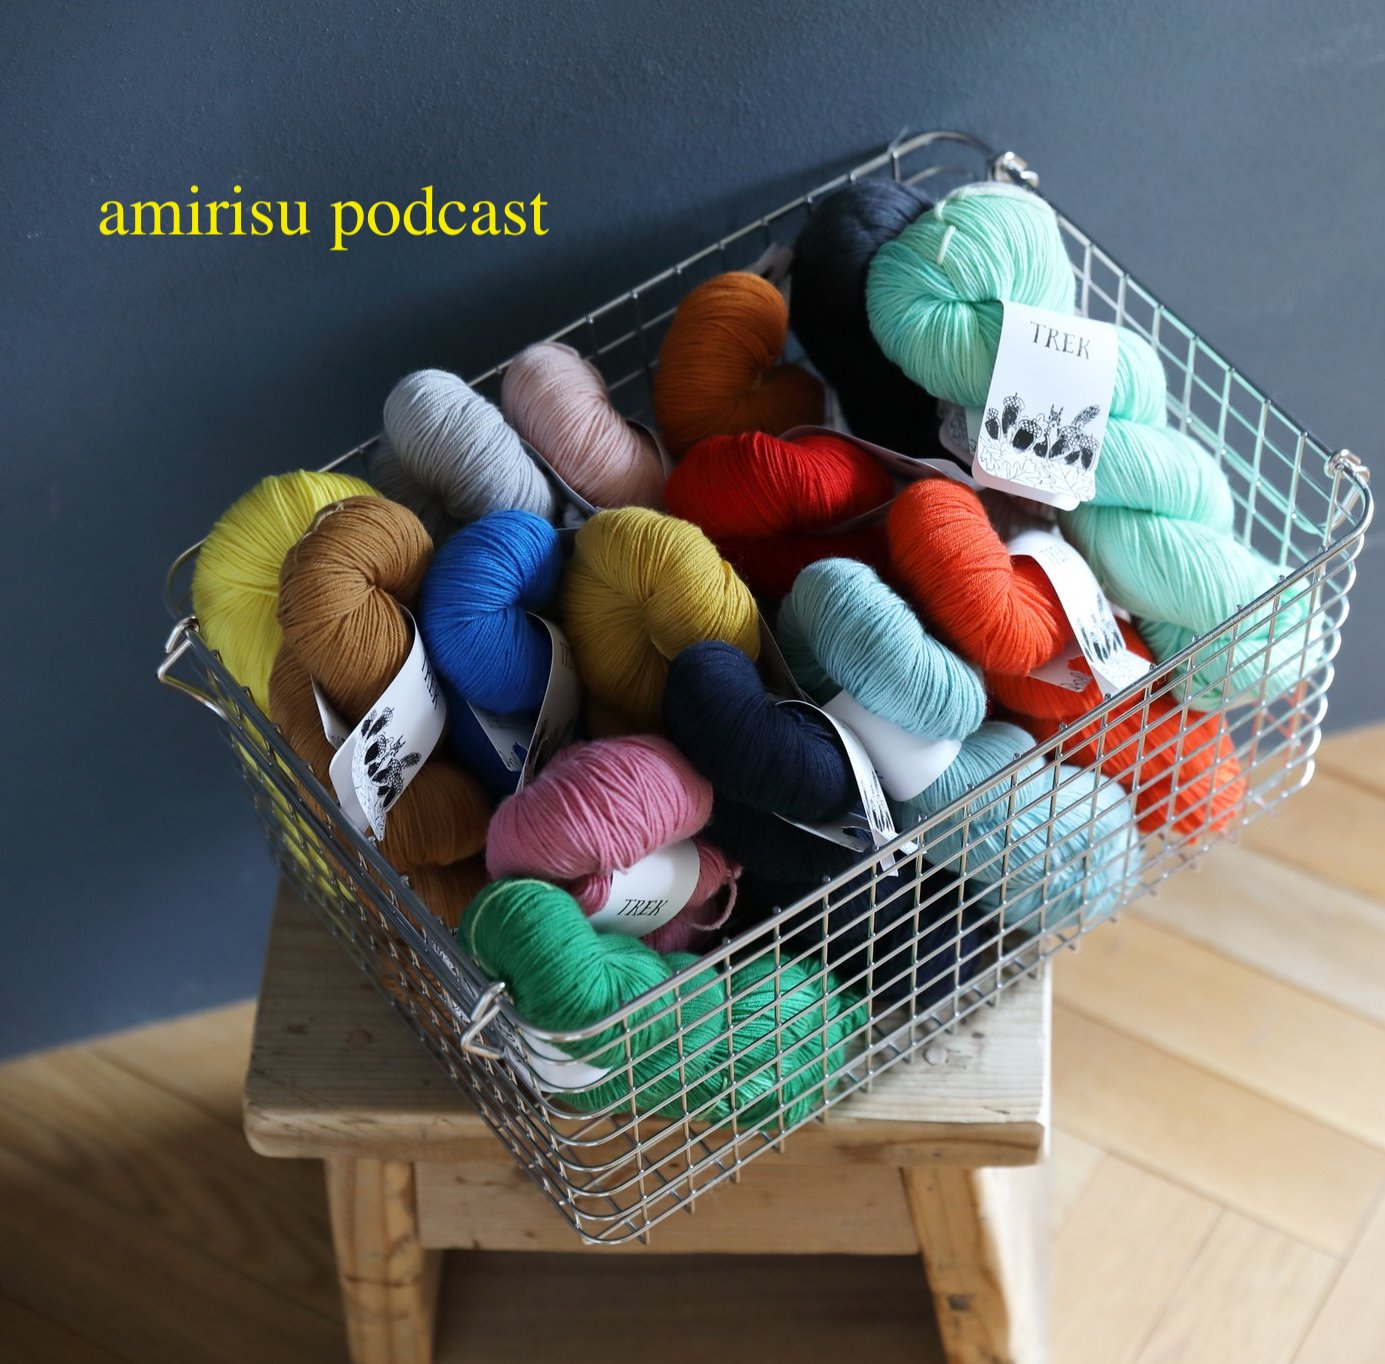 amirisu podcast始めます!